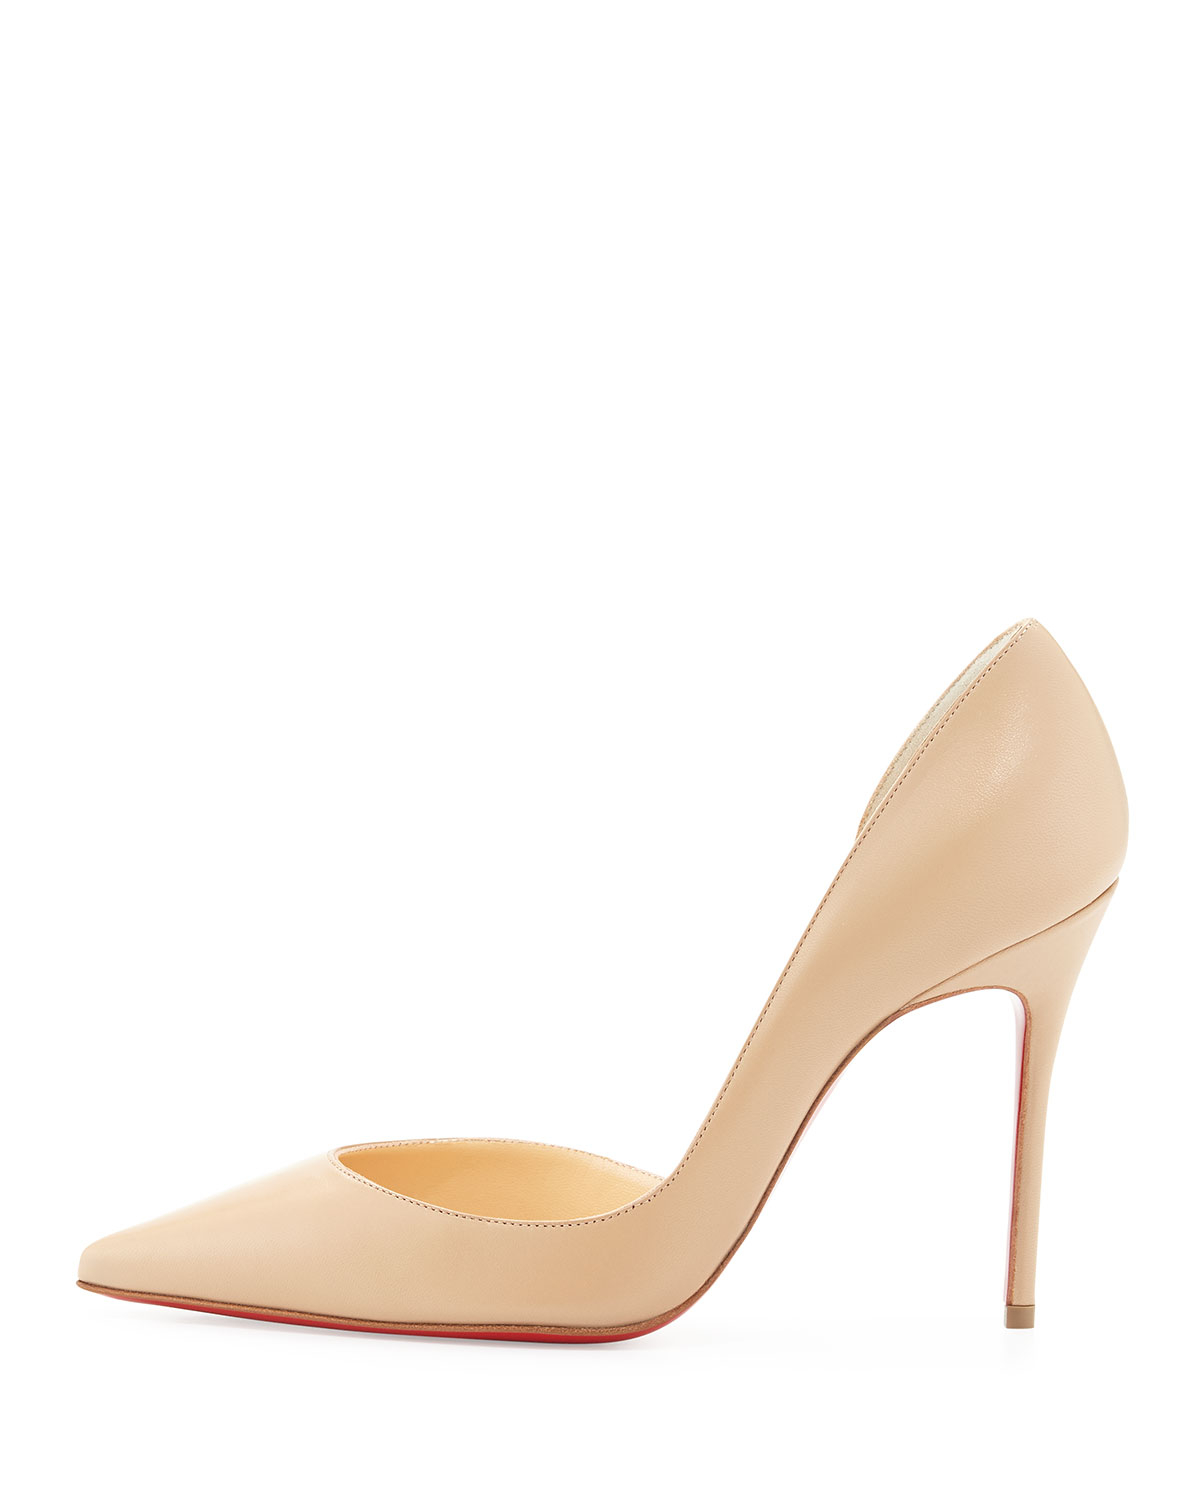 christian louboutin iriza half d 39 orsay leather pumps in beige nude lyst. Black Bedroom Furniture Sets. Home Design Ideas